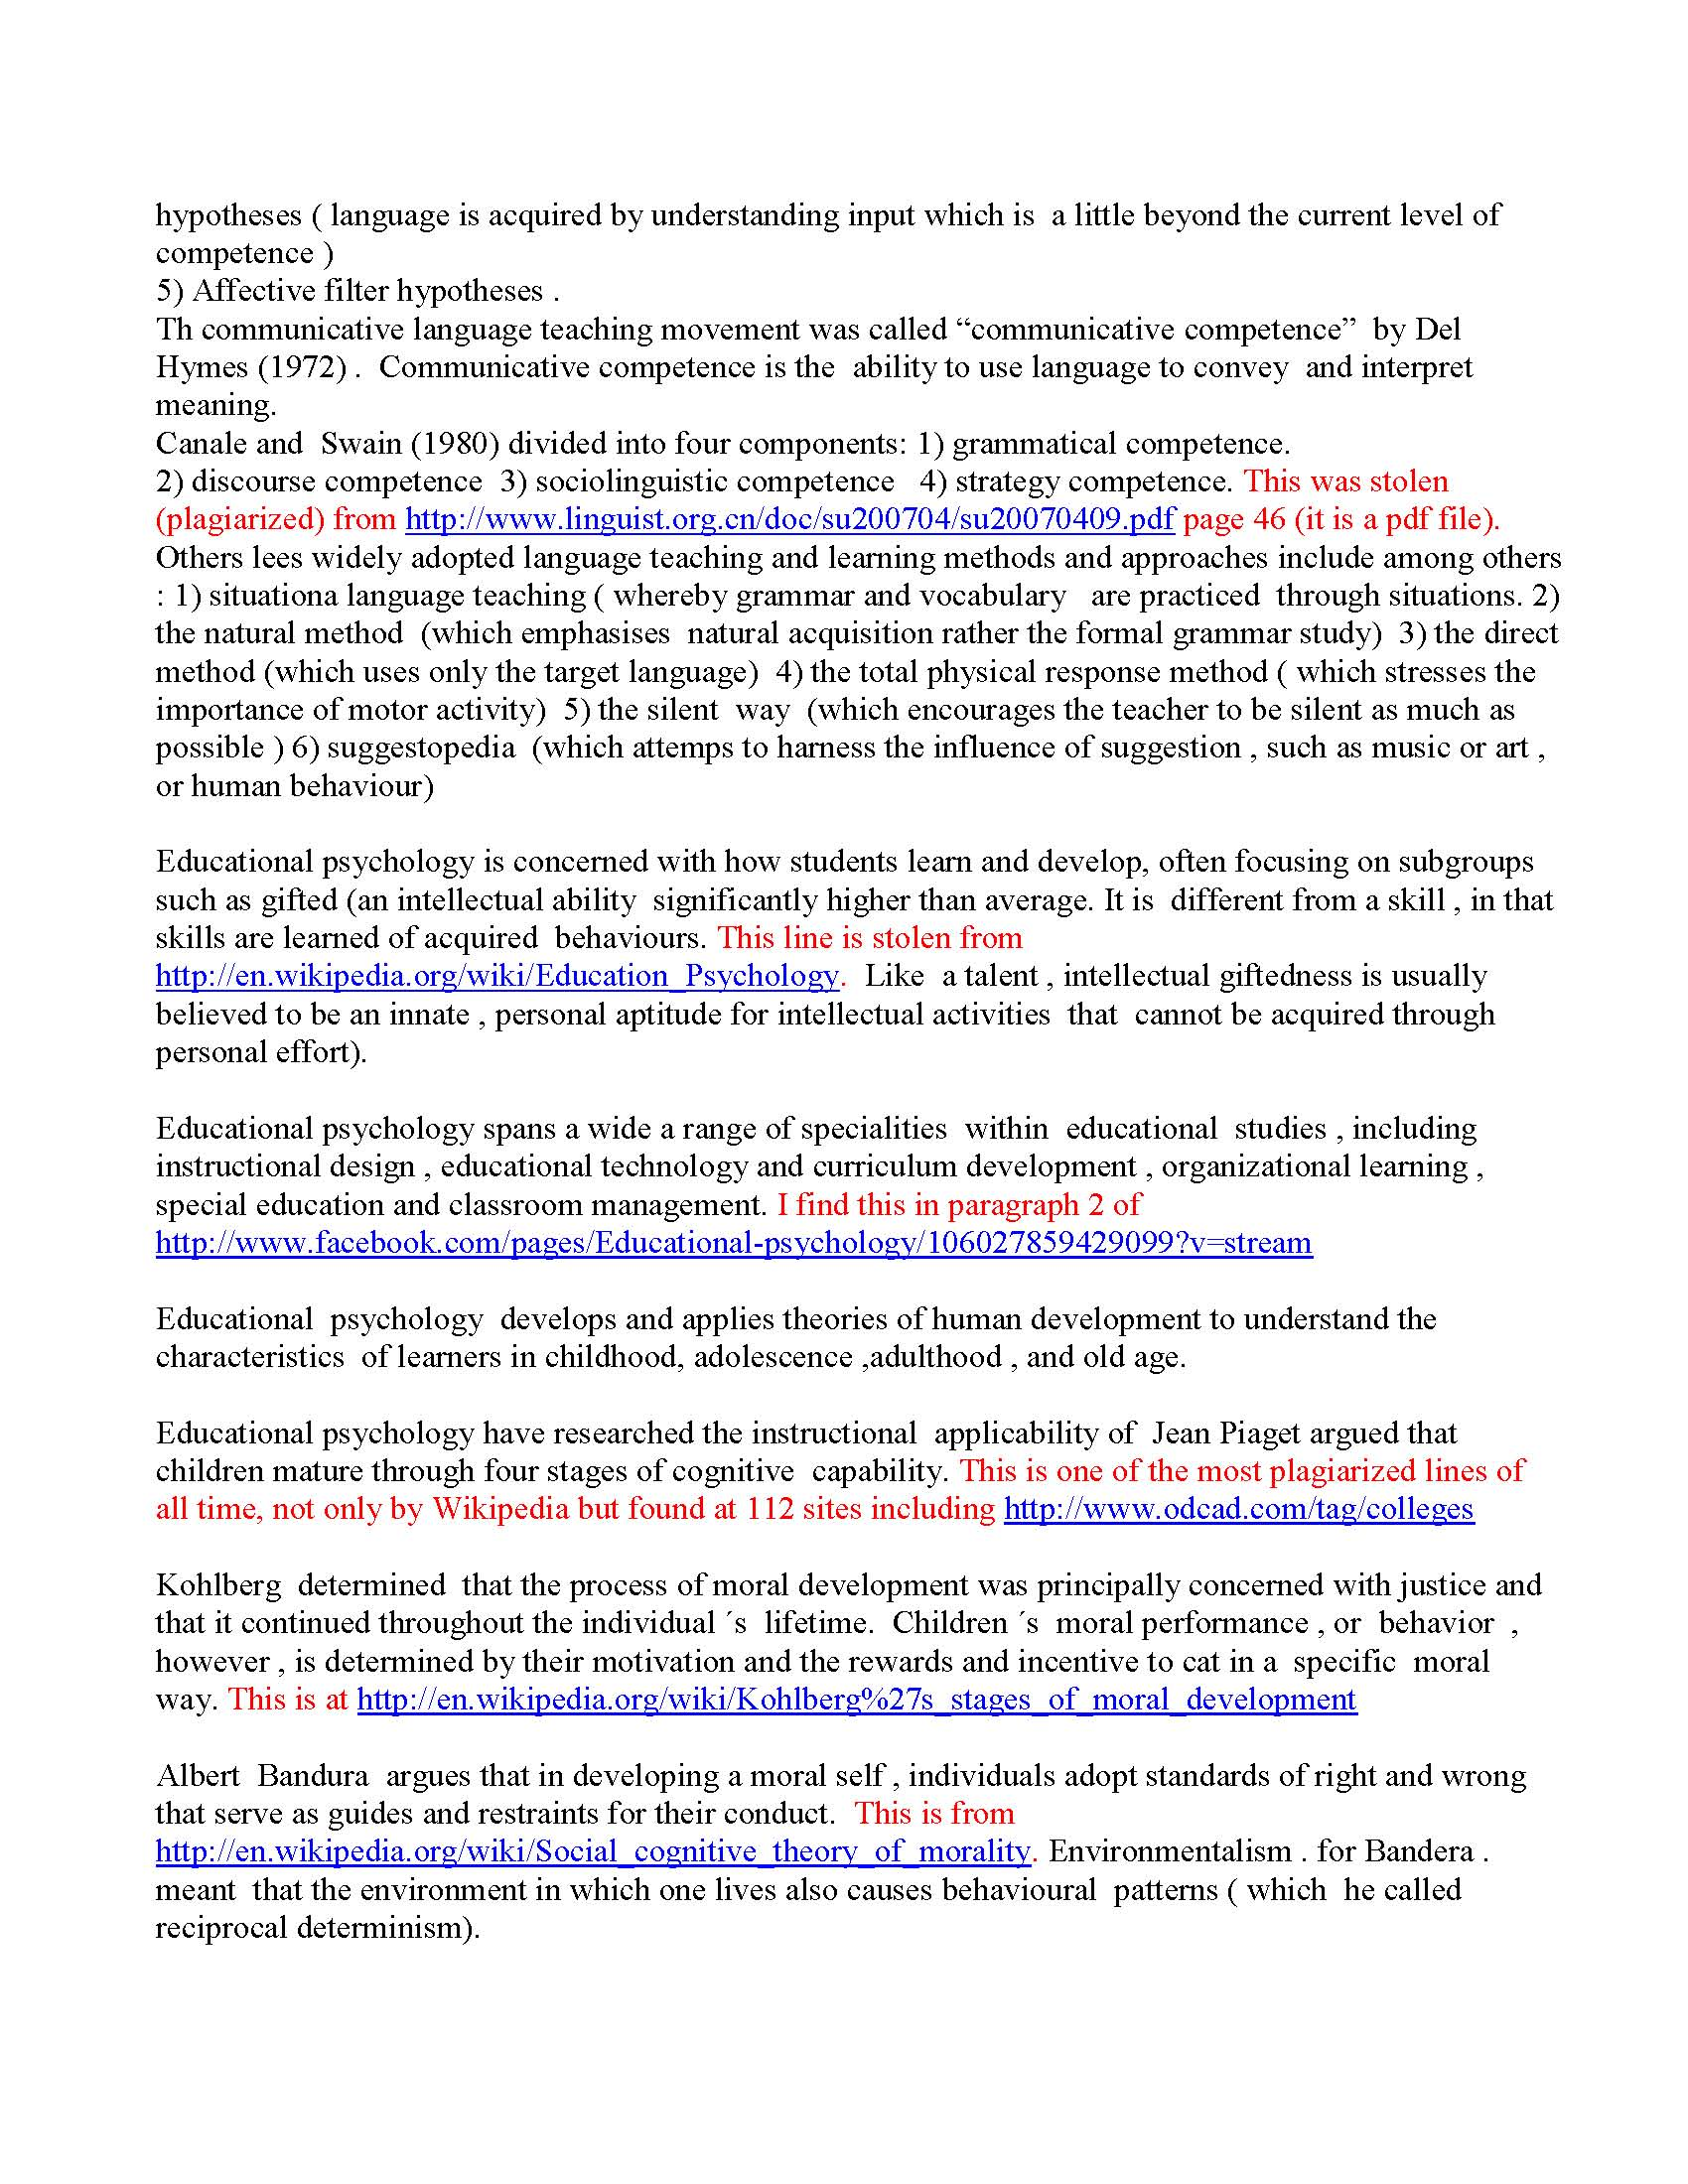 010 Essay Example Plagiarism Free Essays Initial Read And Graded Page 2 Impressive 100 Check Full